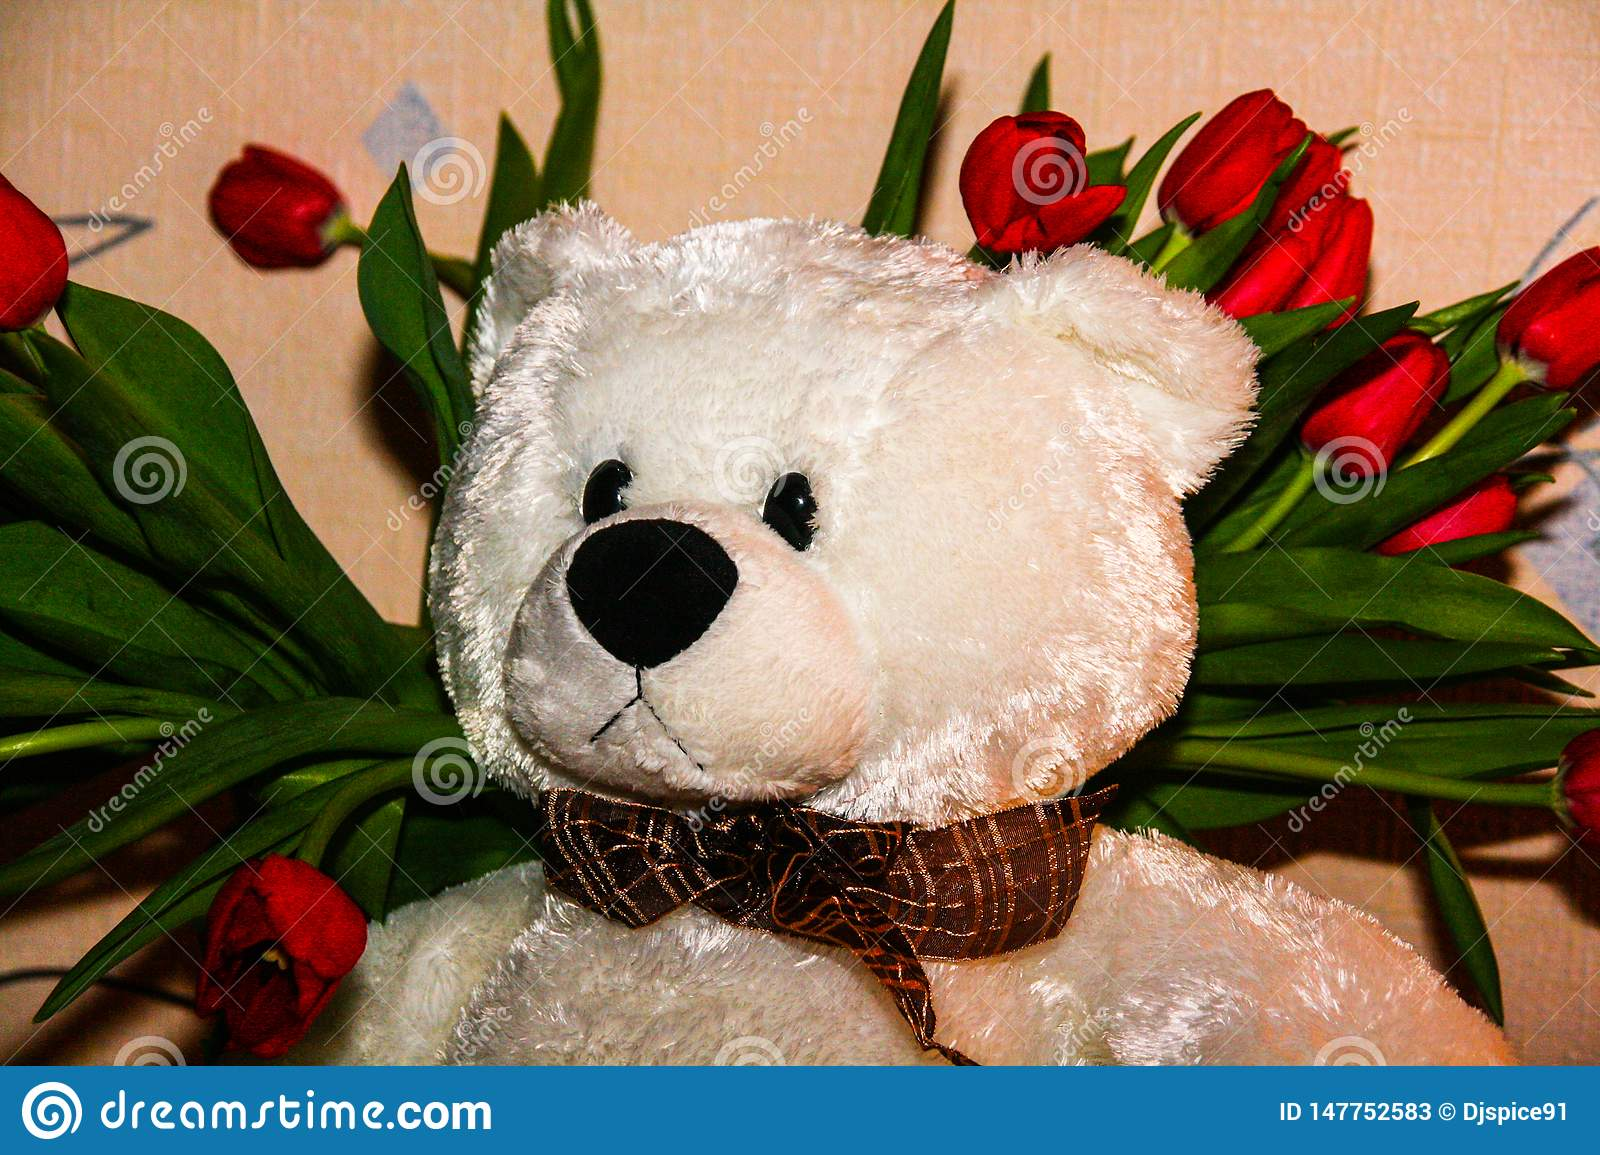 White Teddy bear on the background of red tulips